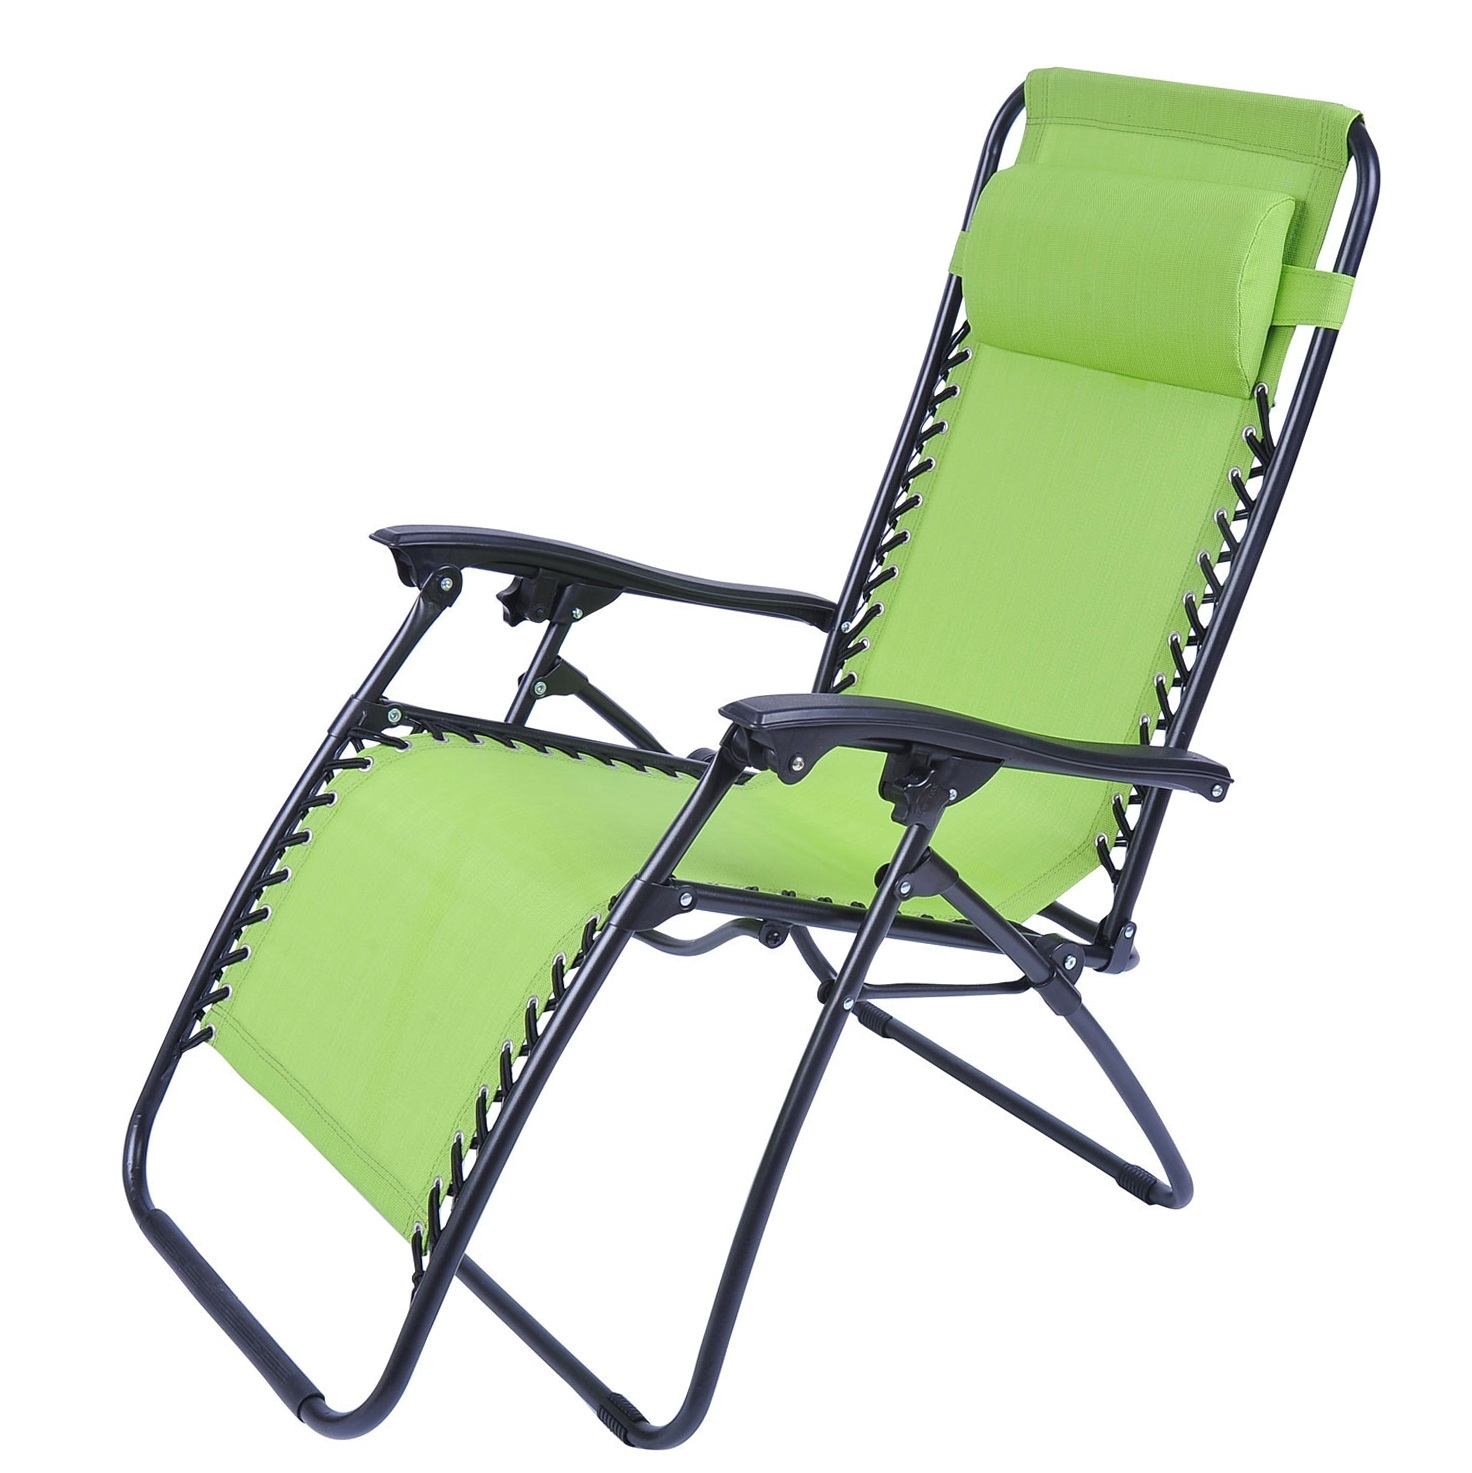 Zero Gravity Chaise Lounges Inside Newest Folding Chaise Lounge Chair Patio Outdoor Pool Beach Lawn Recliner (View 10 of 15)